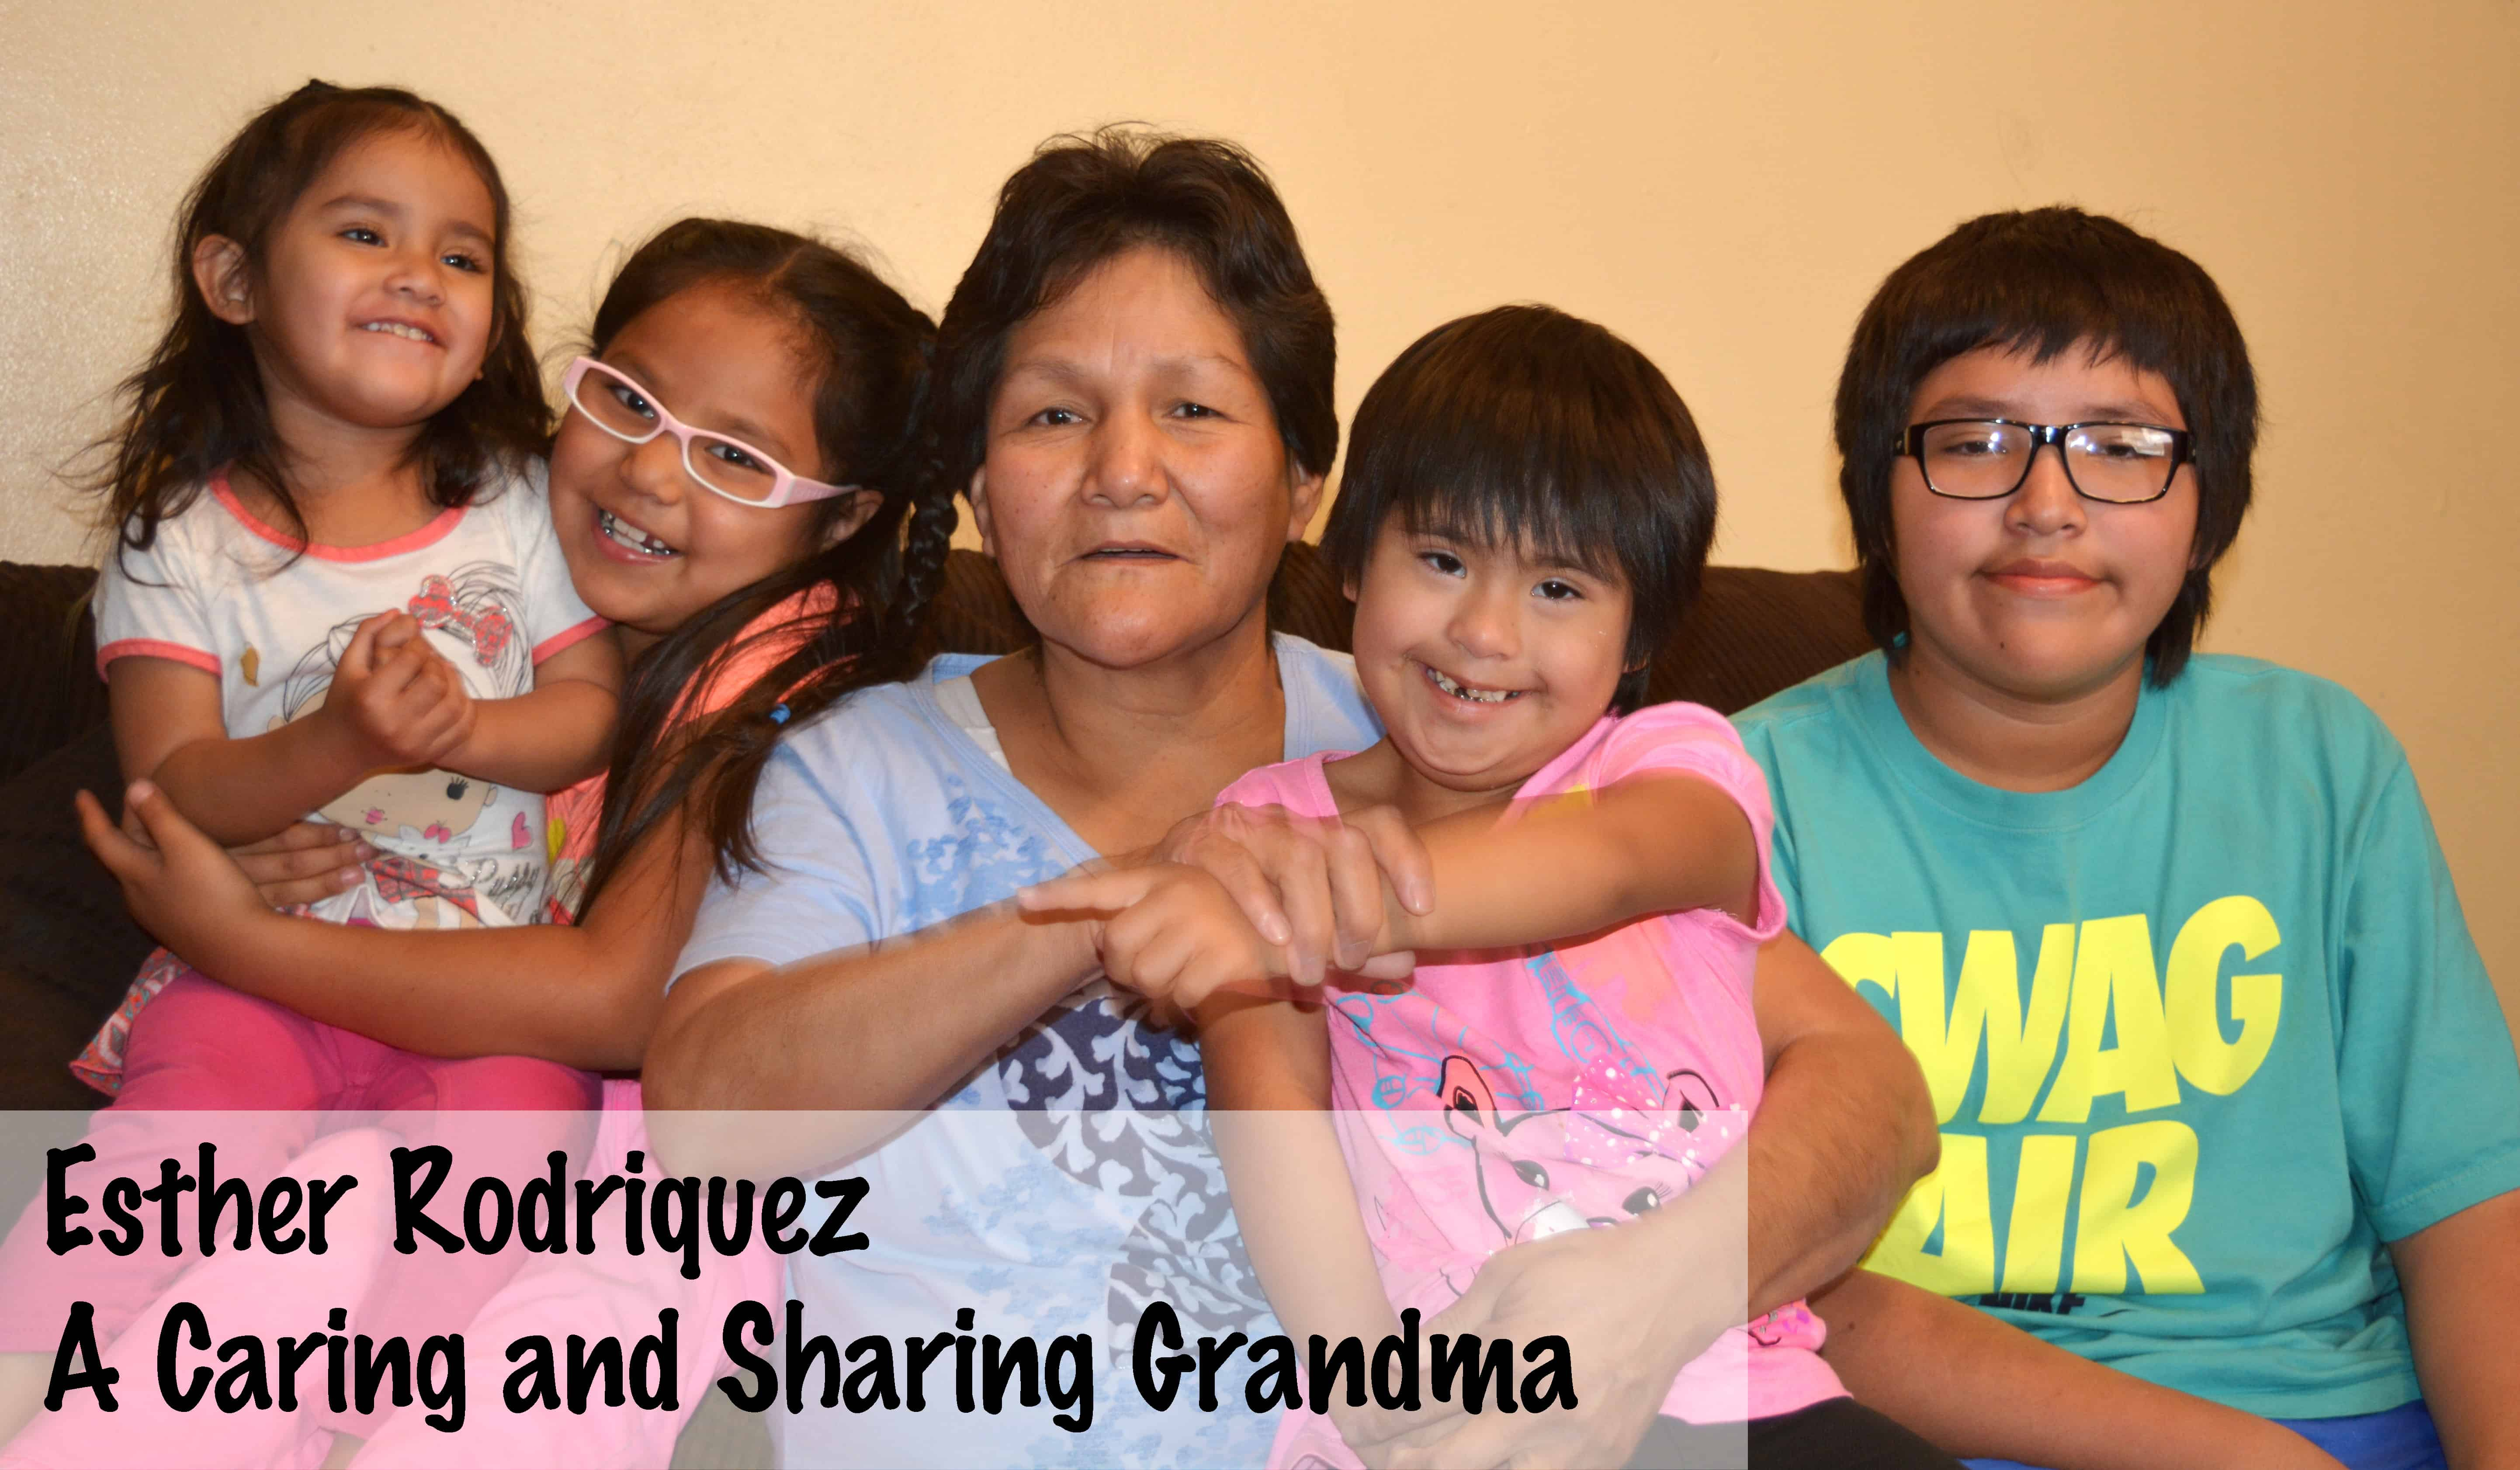 Esther Rodriquez: A Caring and Sharing Grandma